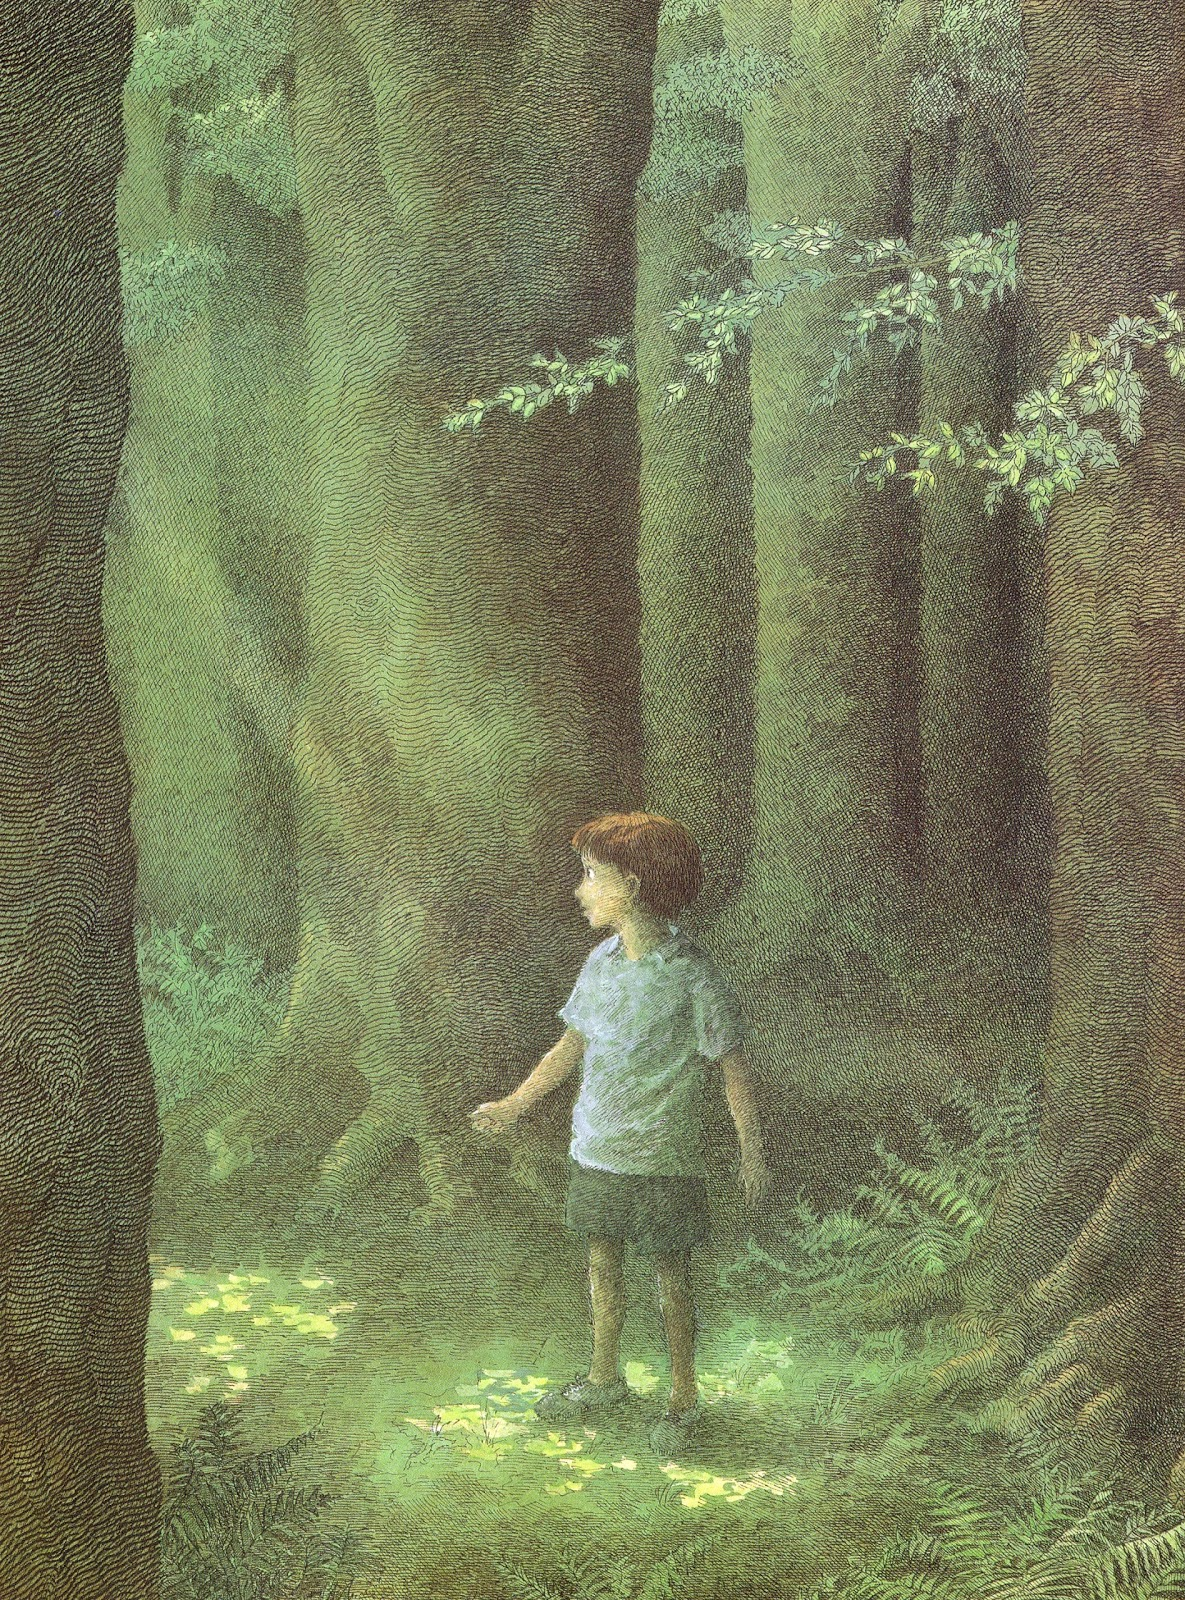 light in the forest book analysis - the light in the forest conrad richter's book, the light in the forest, is about a boy from  - analysis of a light in the forest by conrad richter a light in.